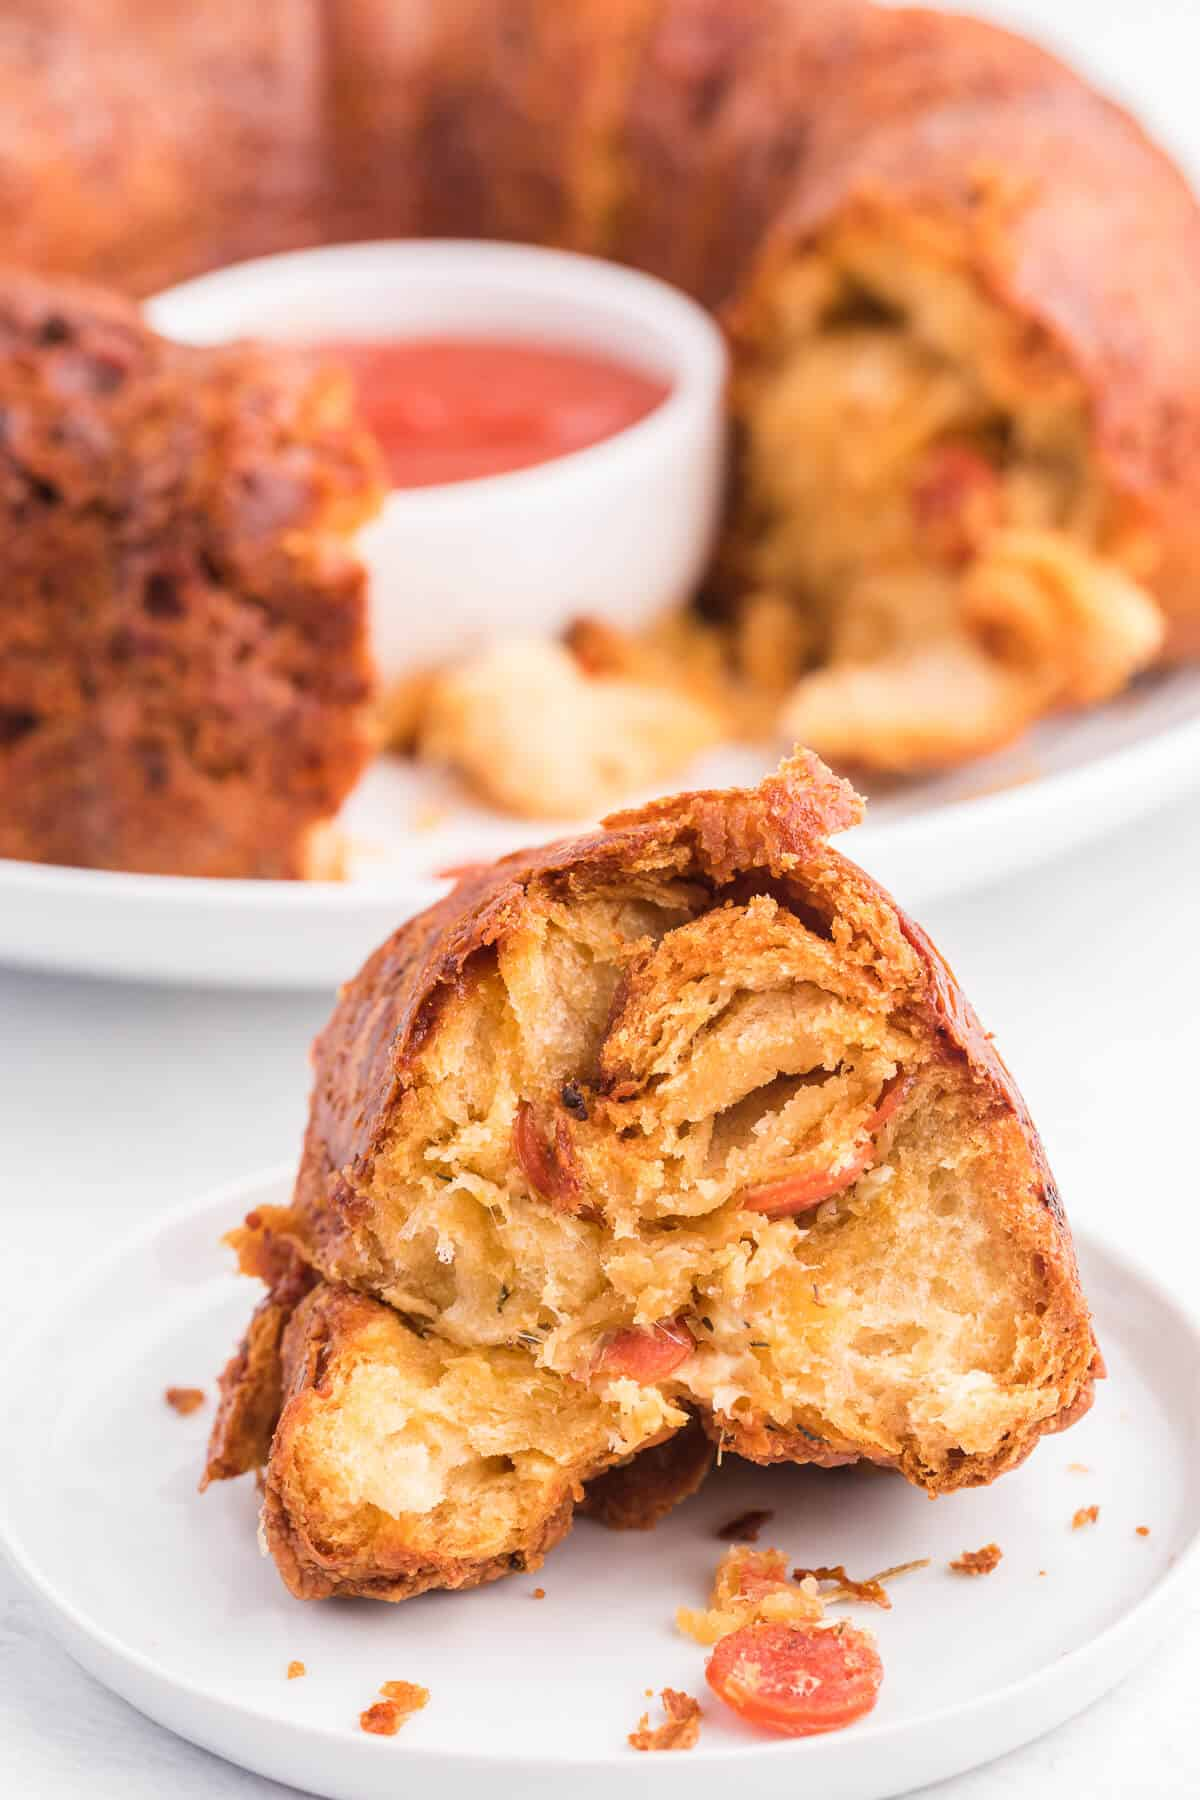 Pizza Monkey Bread Recipe - This pull apart game day recipe is simple to make in a bundt pan. Crescent roll dough, pepperoni and mozzarella cheese are combined to make the most delicious Italian-style appetizer. Serve with some pizza sauce for easy dipping!